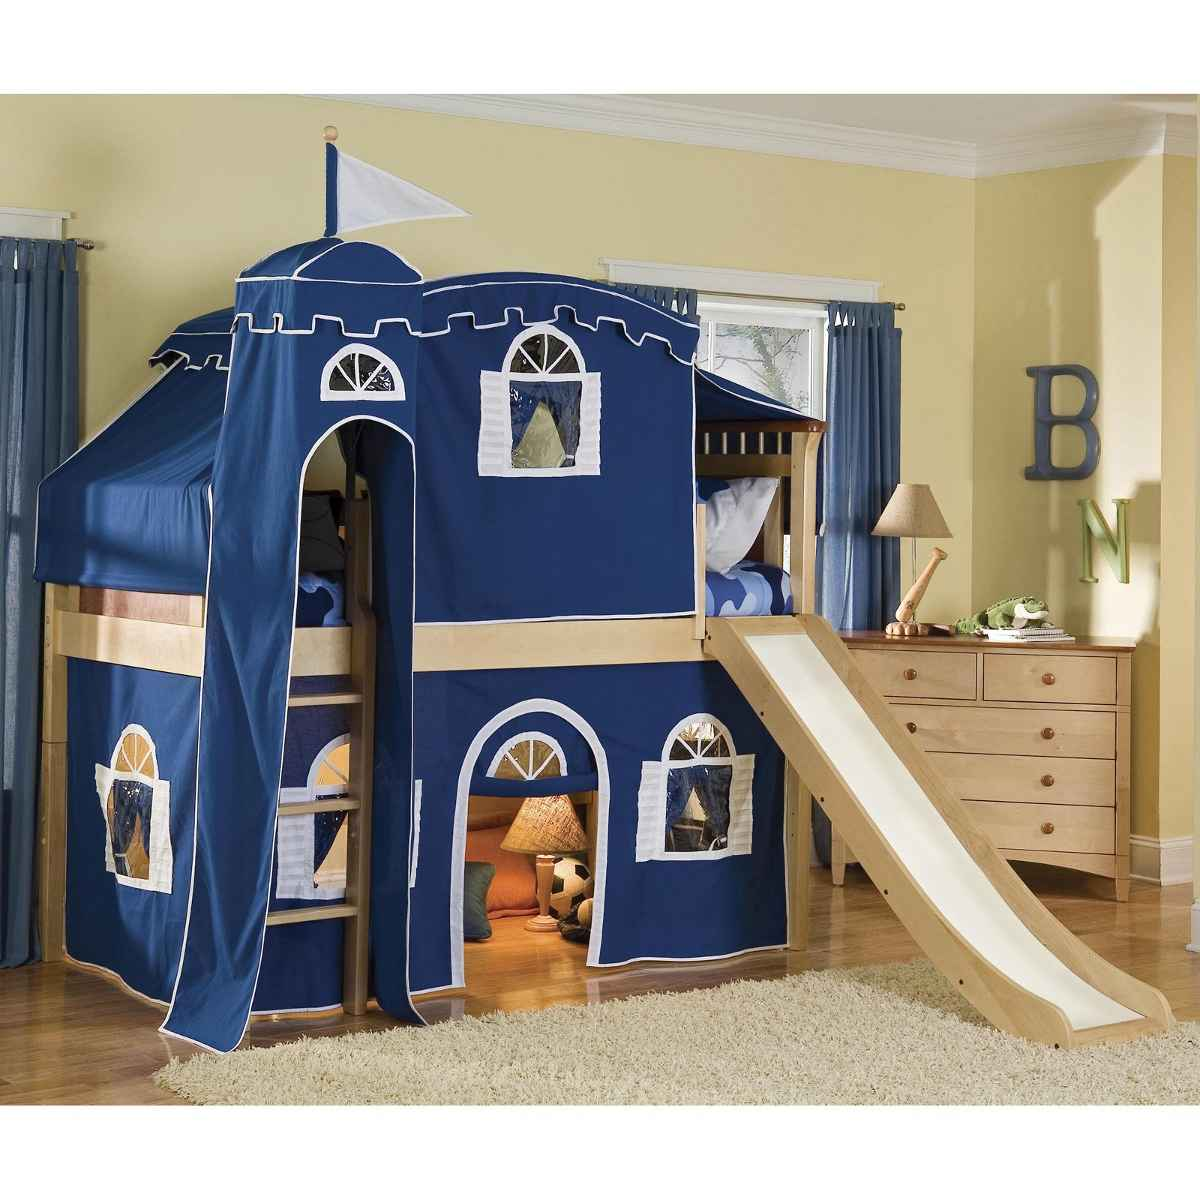 Blue Tent Castle Bed for Children